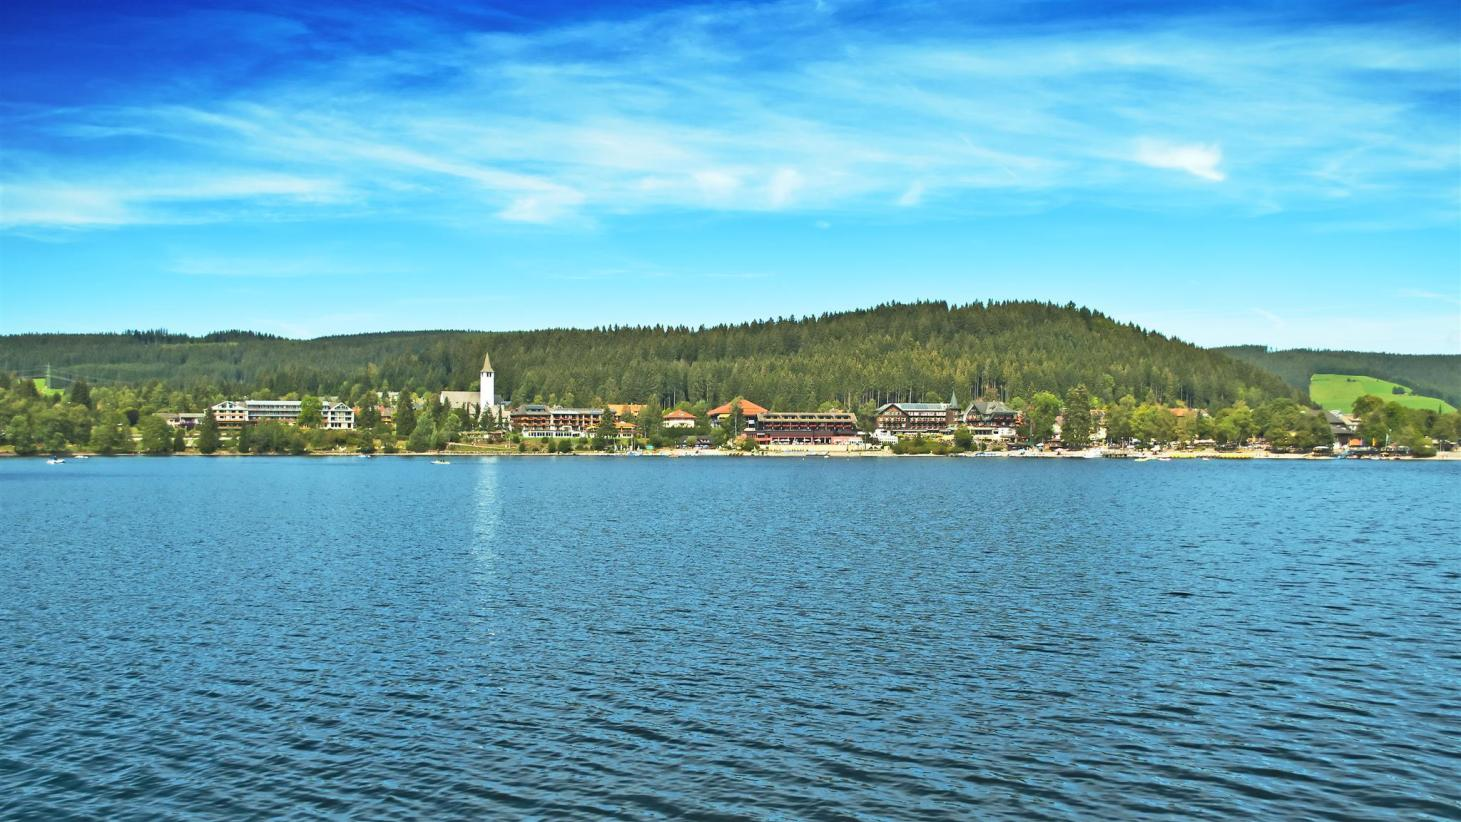 30 Best Titisee Neustadt Hotels In 2020 Great Savings Reviews Of Hotels In Titisee Neustadt Germany